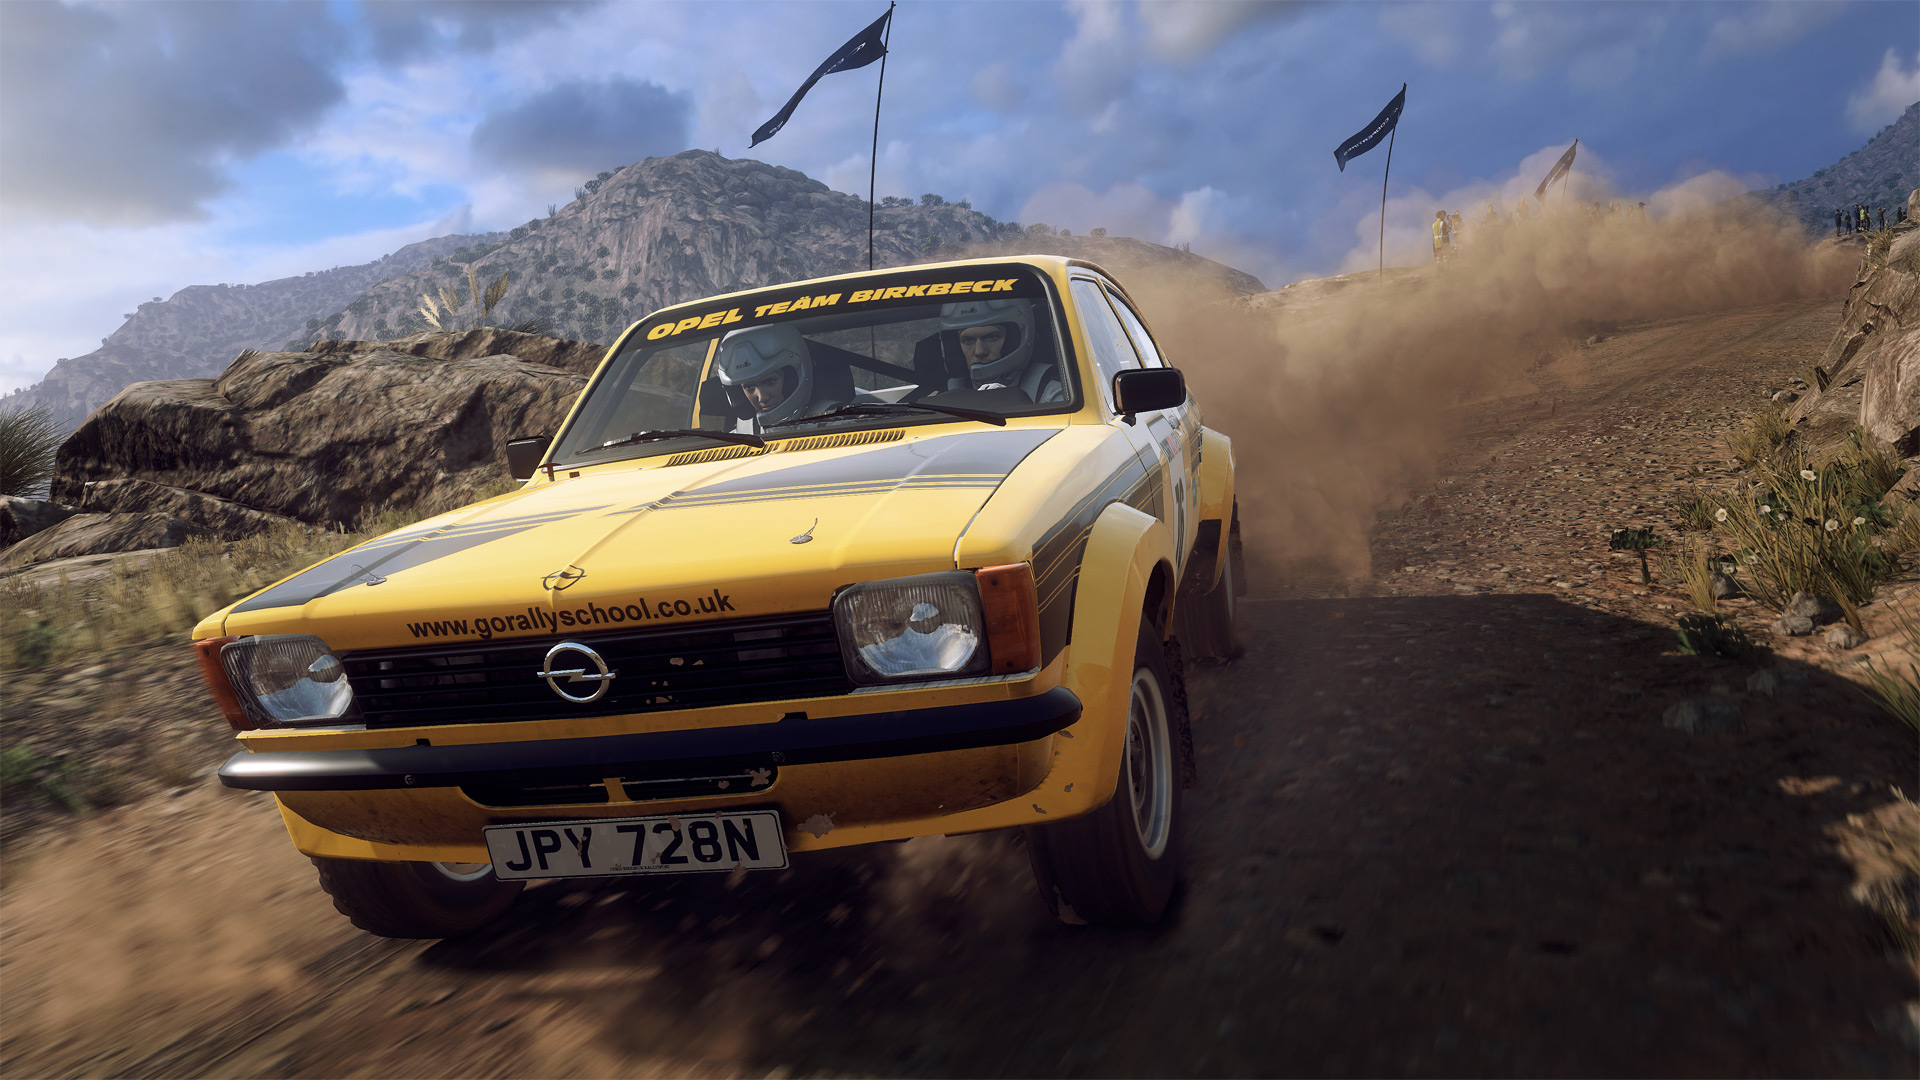 Codemasters lays out Dirt Rally 2.0's Season One content roadmap